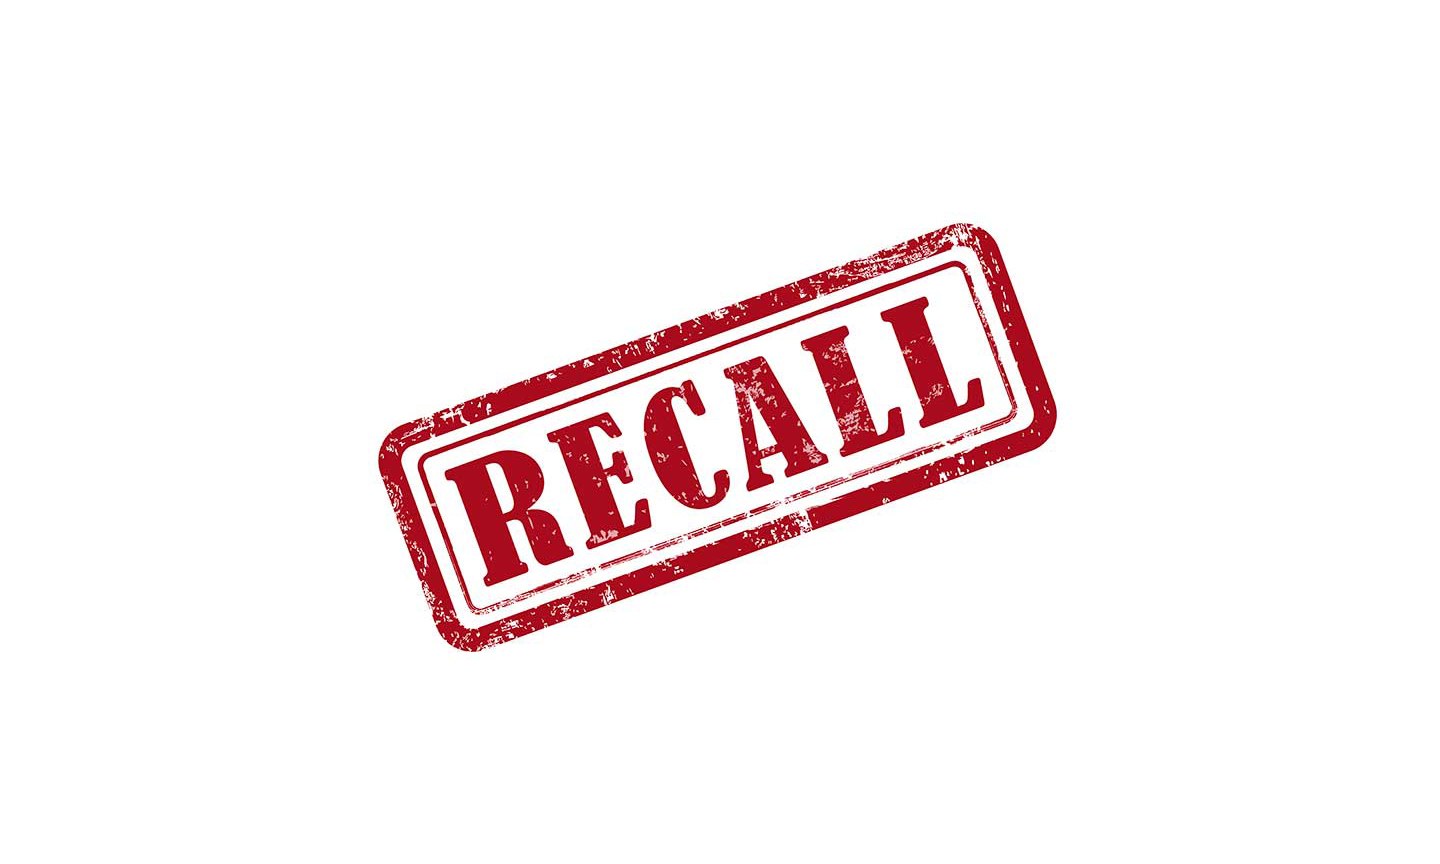 The word recall in they style of a stamp